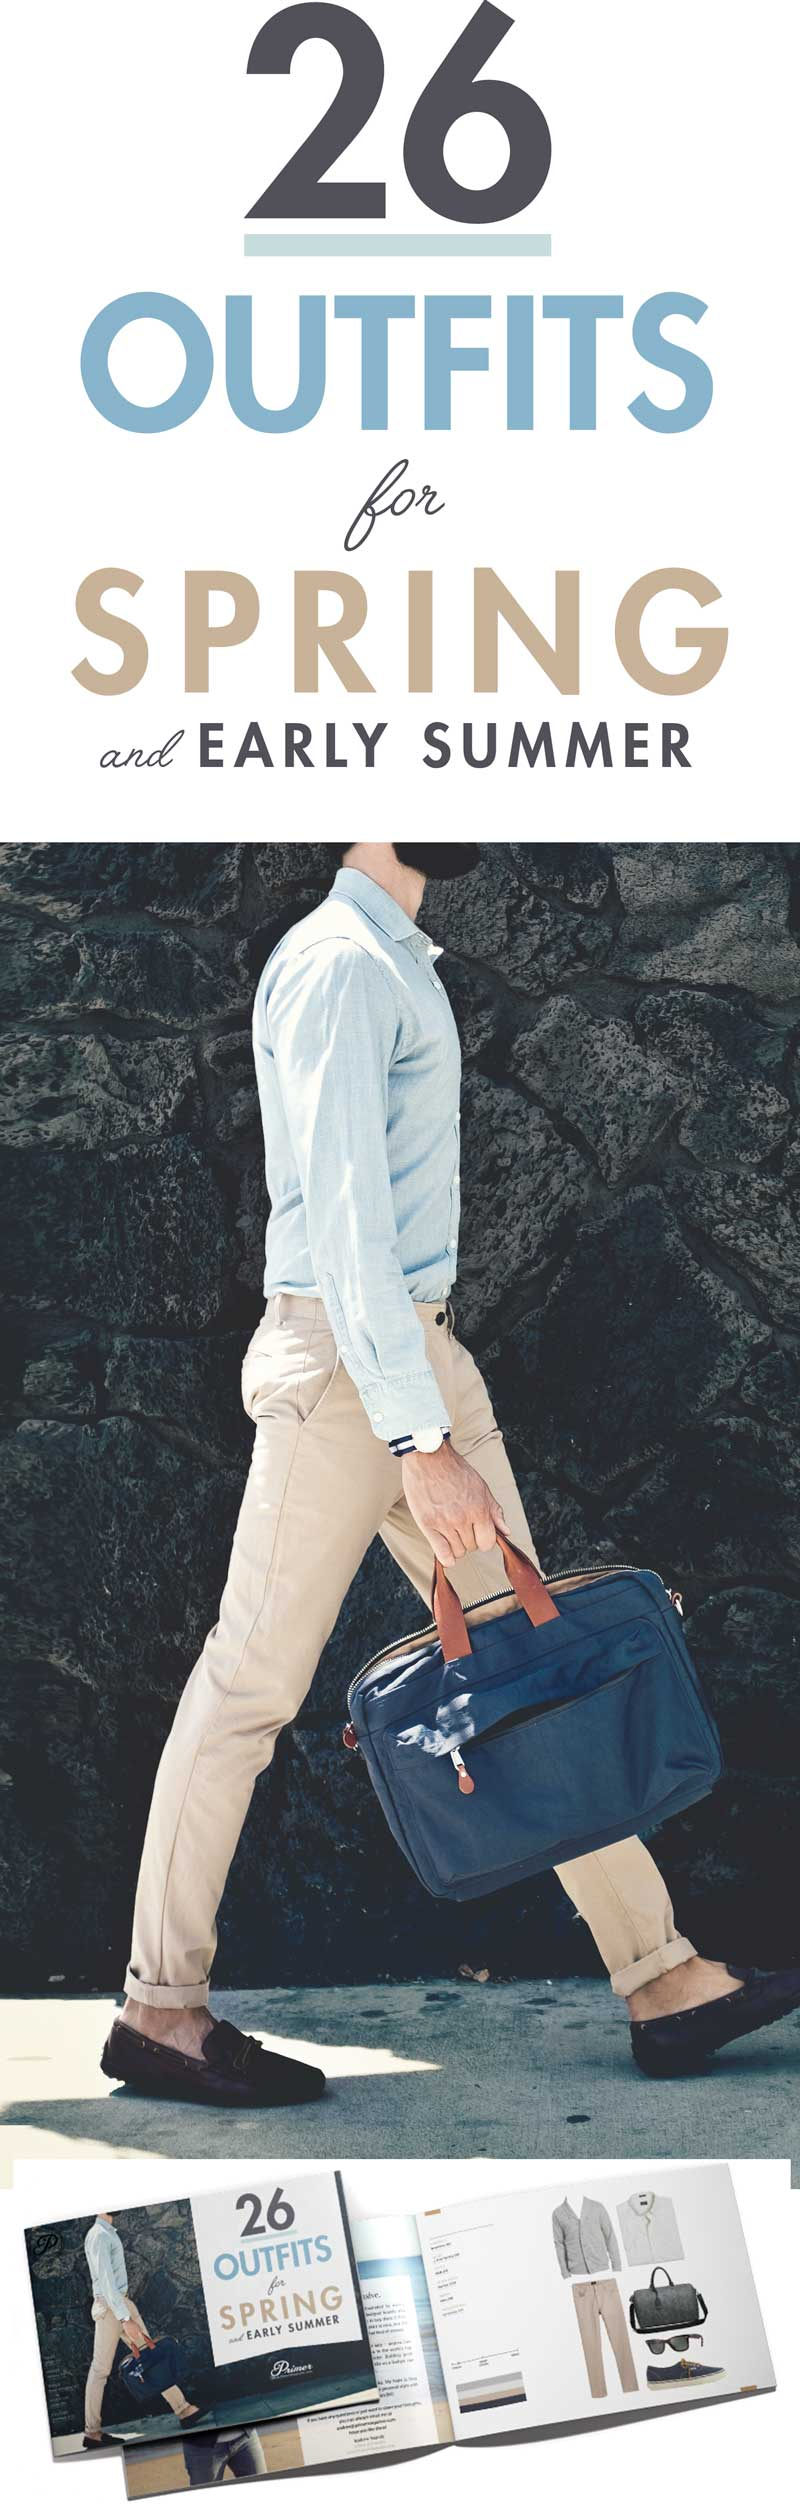 26 Outfits for Spring & Early Summer   Men's Fashion Inspiration   Outfit Ideas